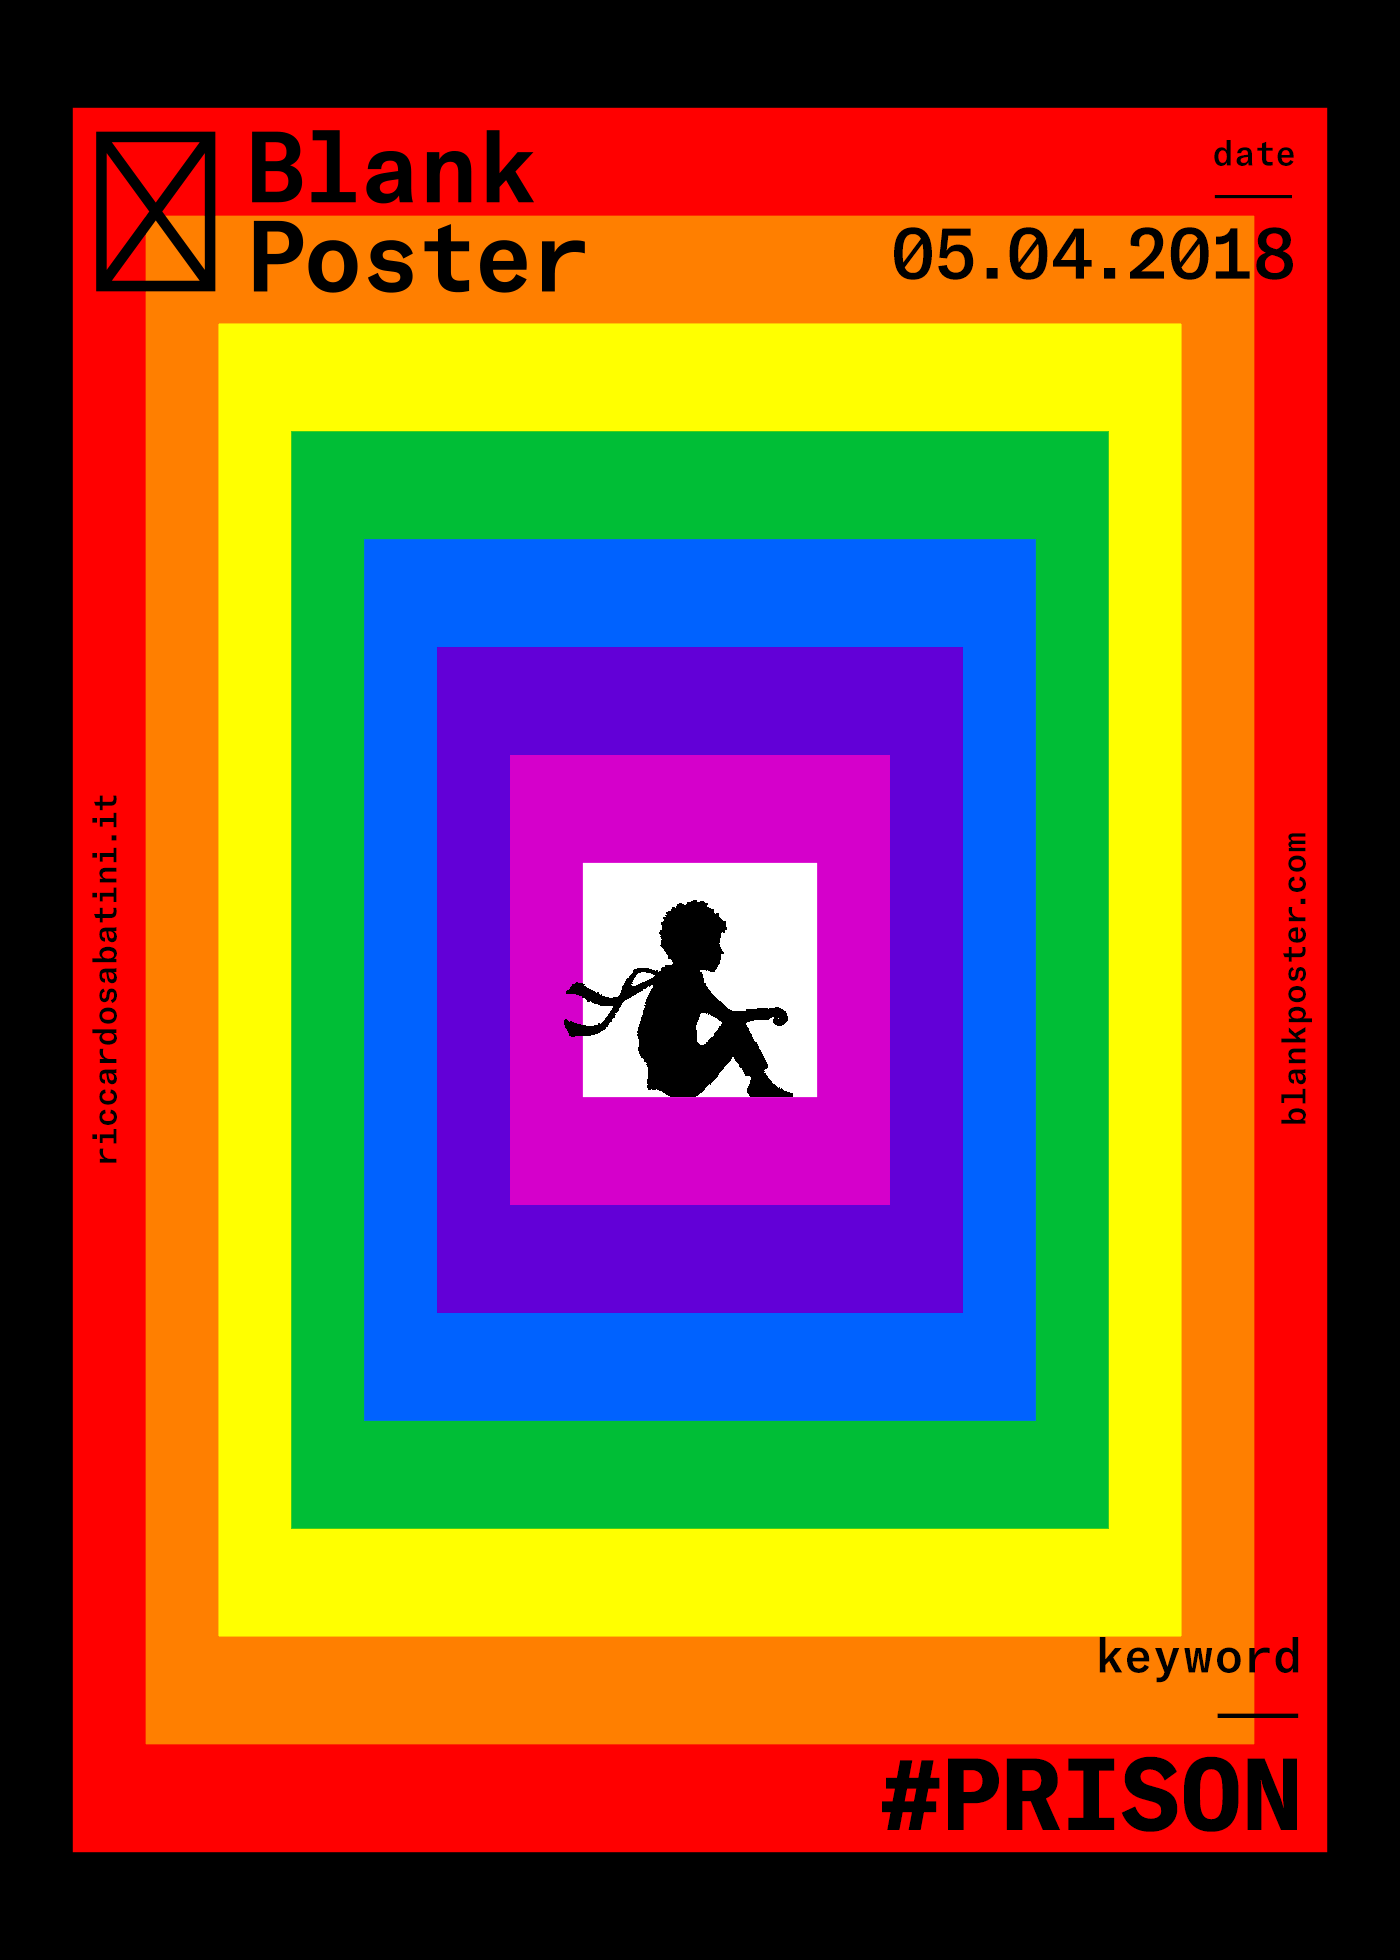 blank-poster-19